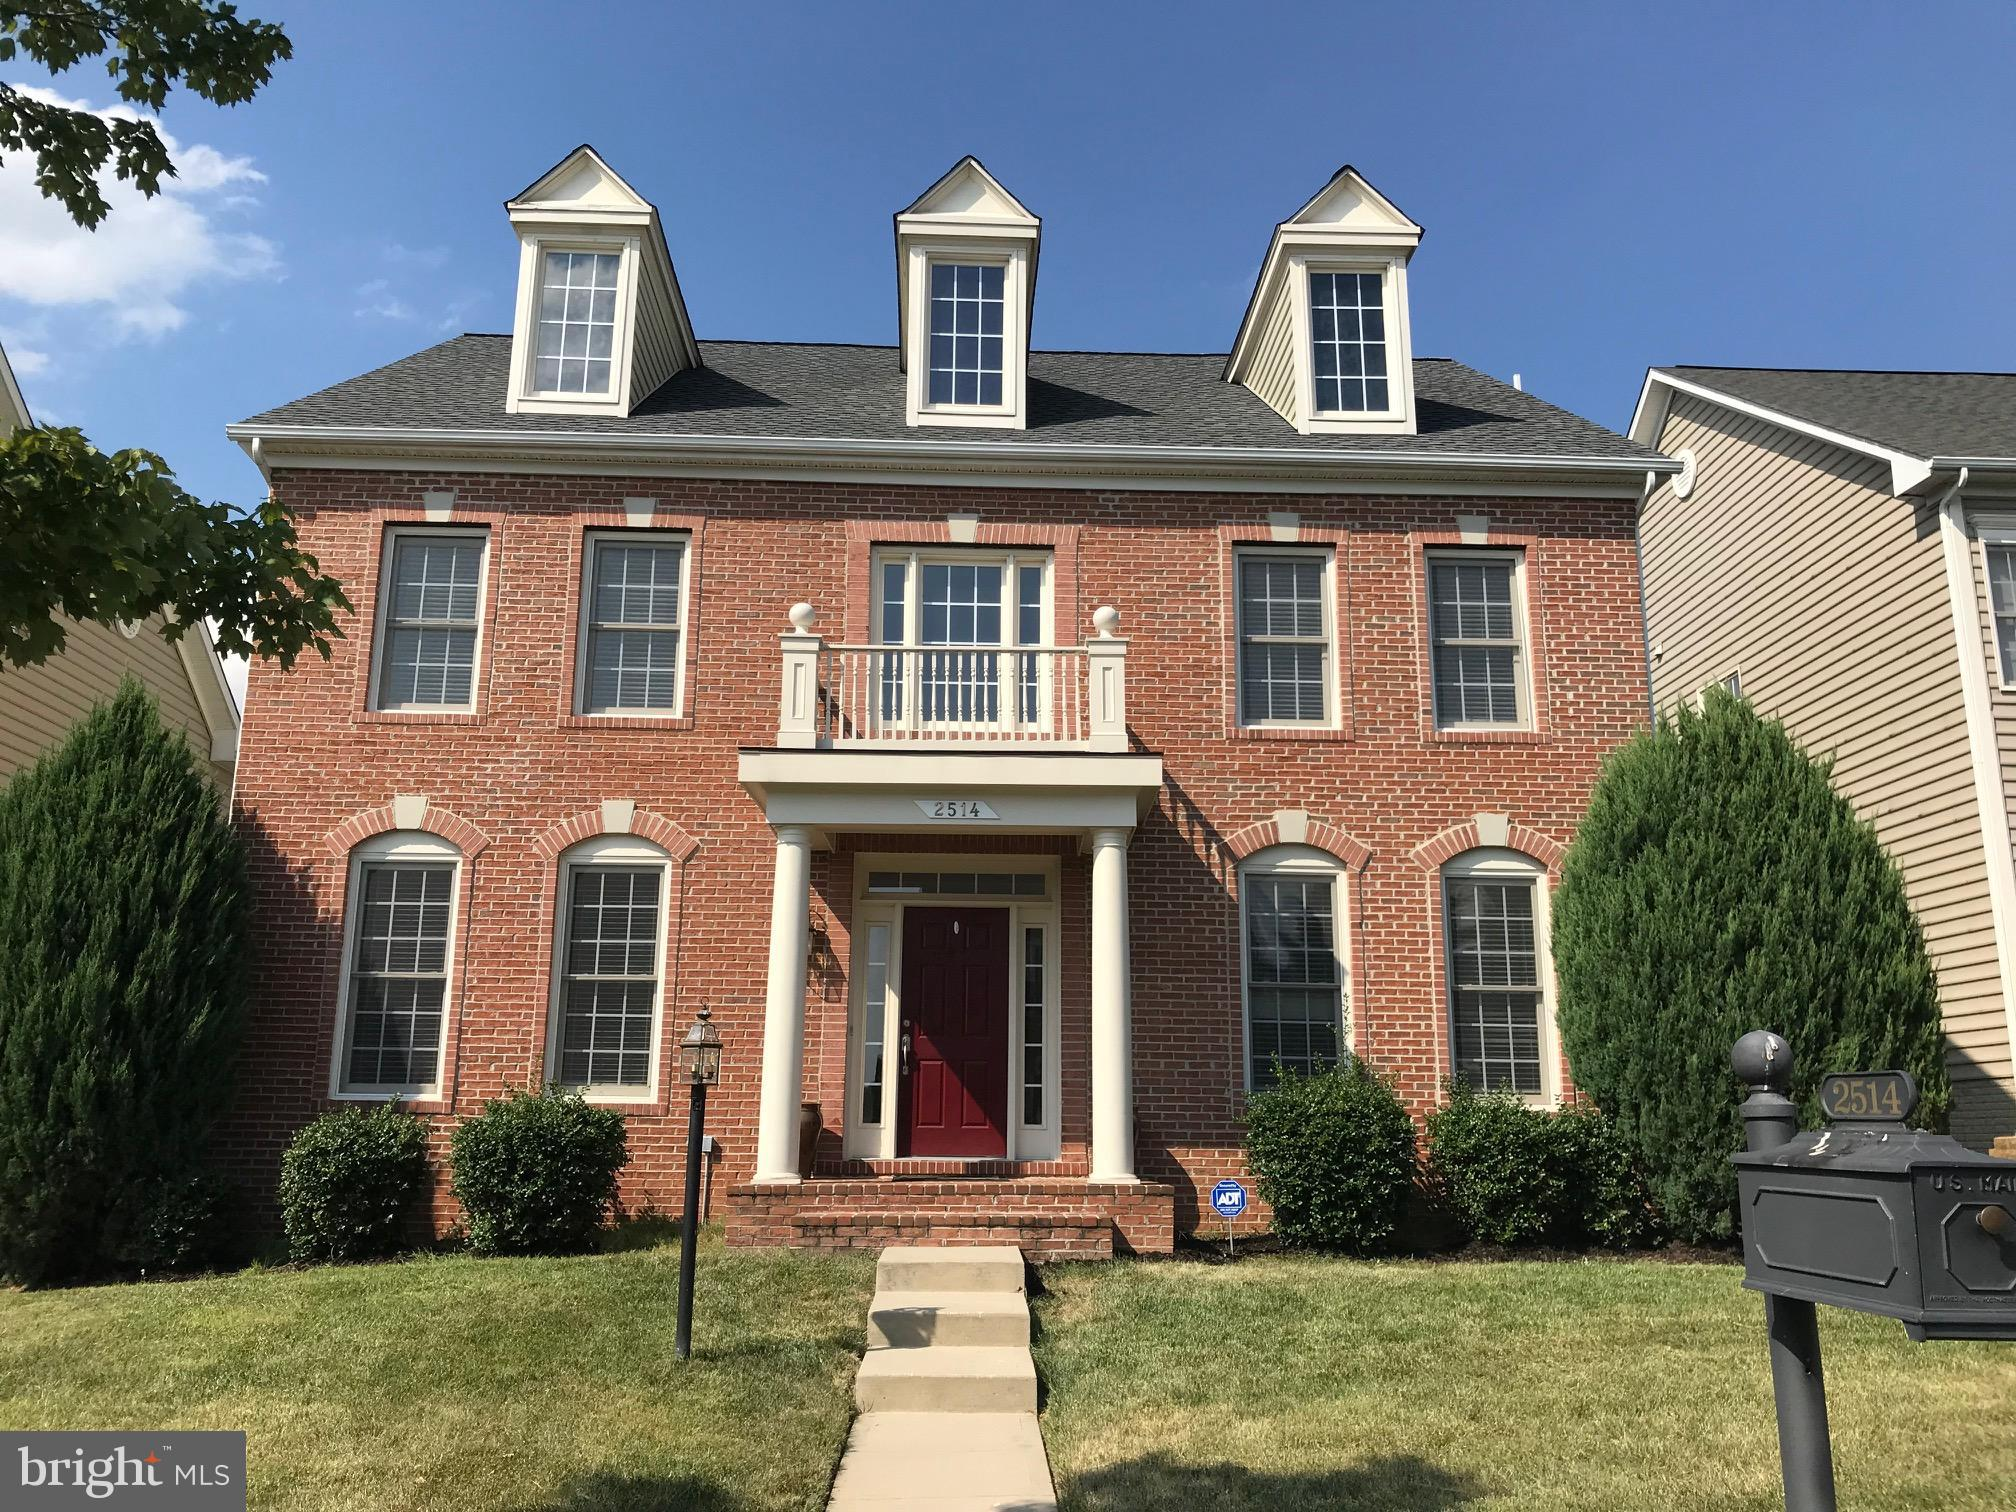 Beautiful Home in Port Potomac closes to Potomac Station Town Center, Hospital and Potomac Mill. Easily access to I 95 and Route 1. Brand new custom master shower and kitchen backsplash, recent replaced roof and upgraded appliances.newly painted power washed deck, walk way and stair way.